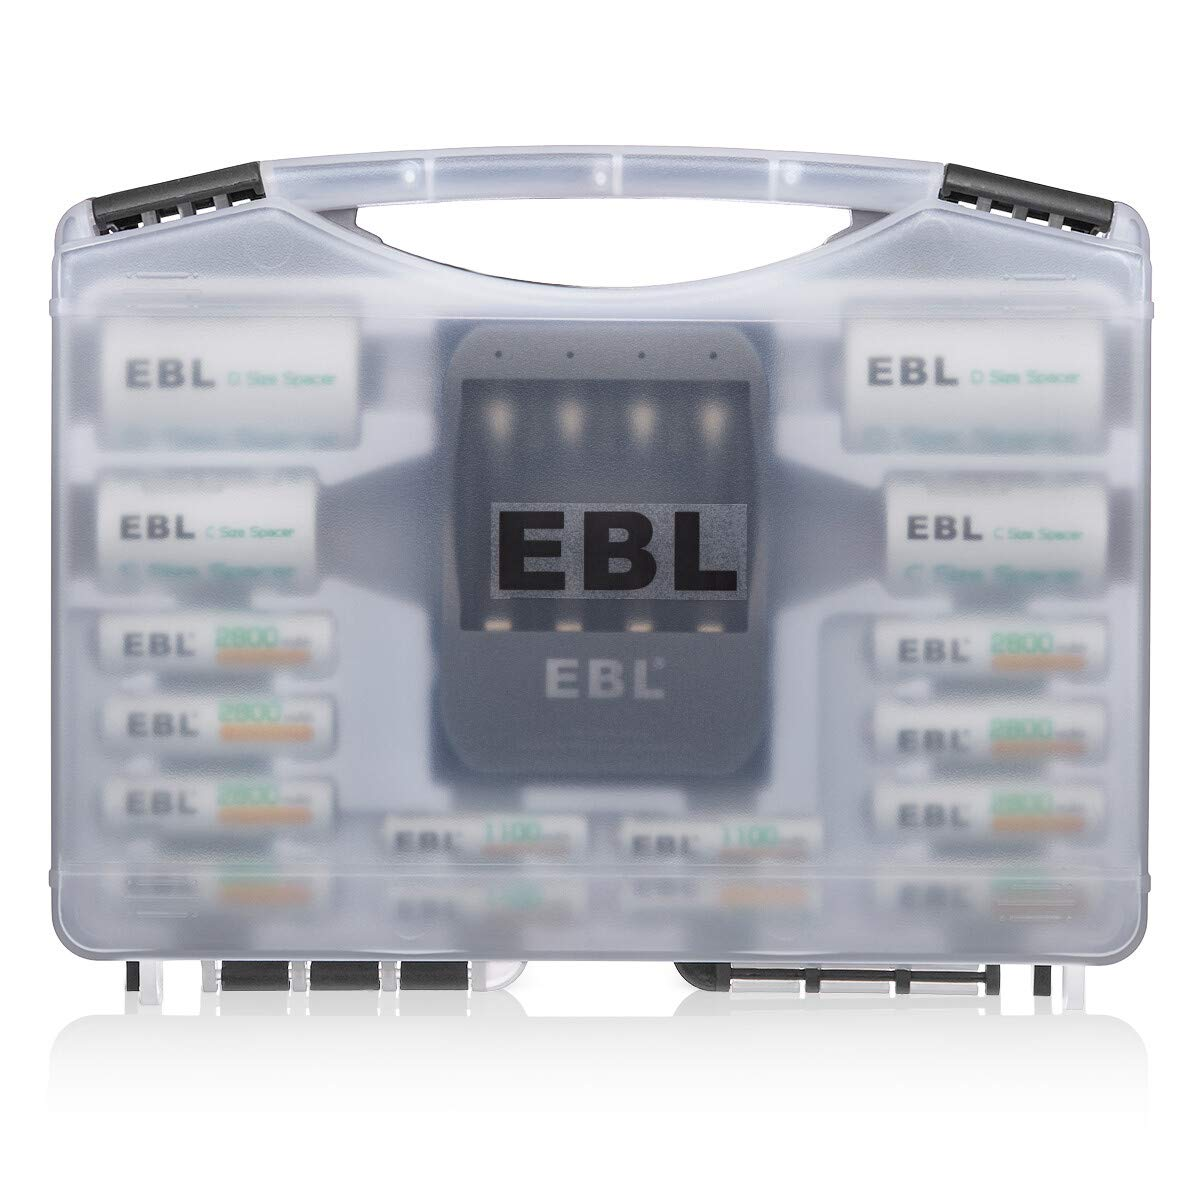 EBL Black Batteries Box Include : Rechargeable 8 AA Batteries + 4 AAA Batteries + 40Min iQuick Battery Charger and 2Pcs C/D Converters with Battery Storage Organizer by EBL